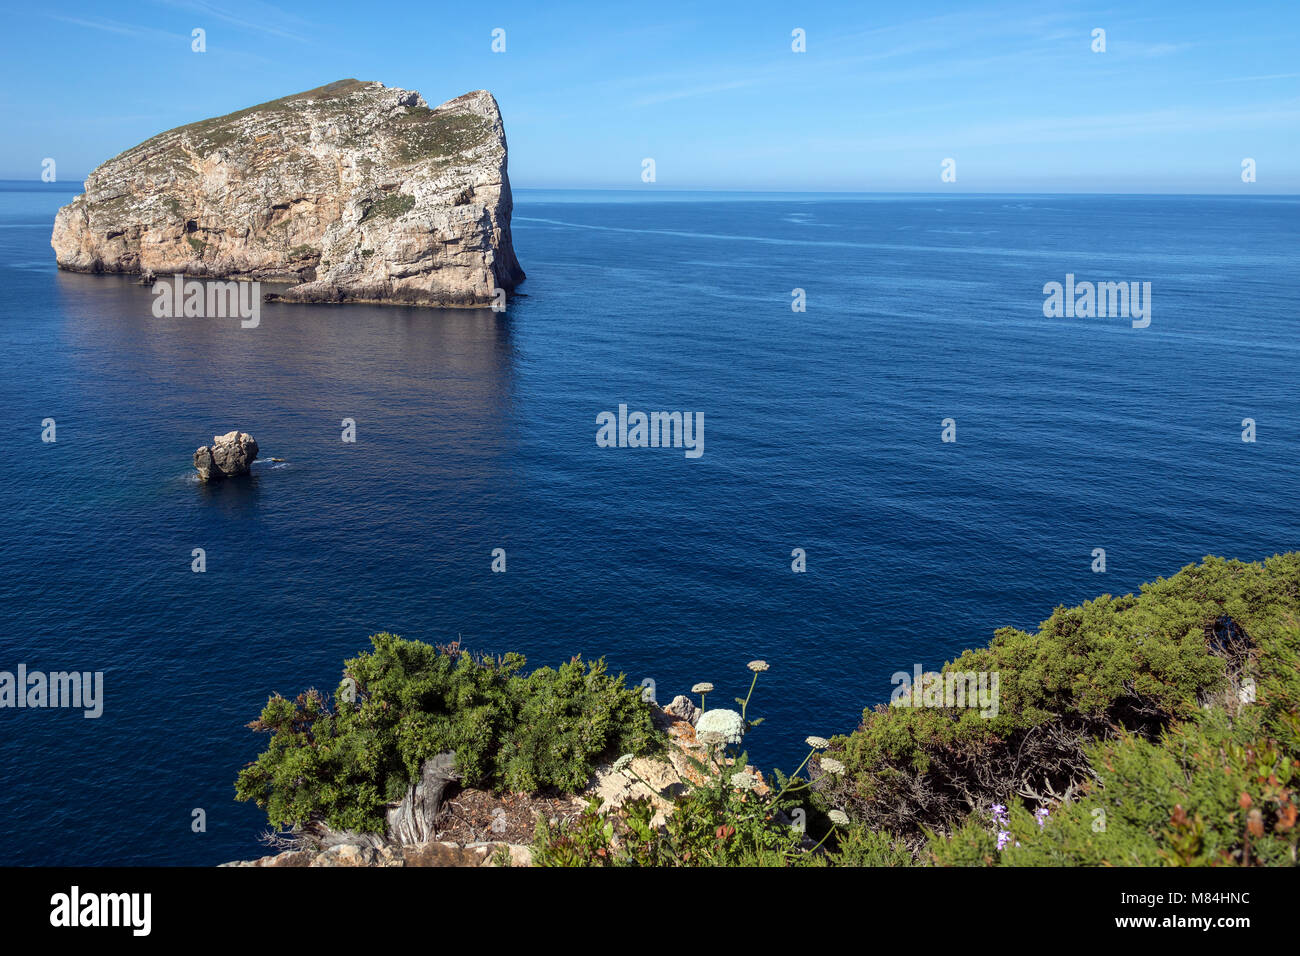 The island of Foradada at Cala Dell Inferno, viewed from the headland of Capo Caccia on the northwest coast of the - Stock Image